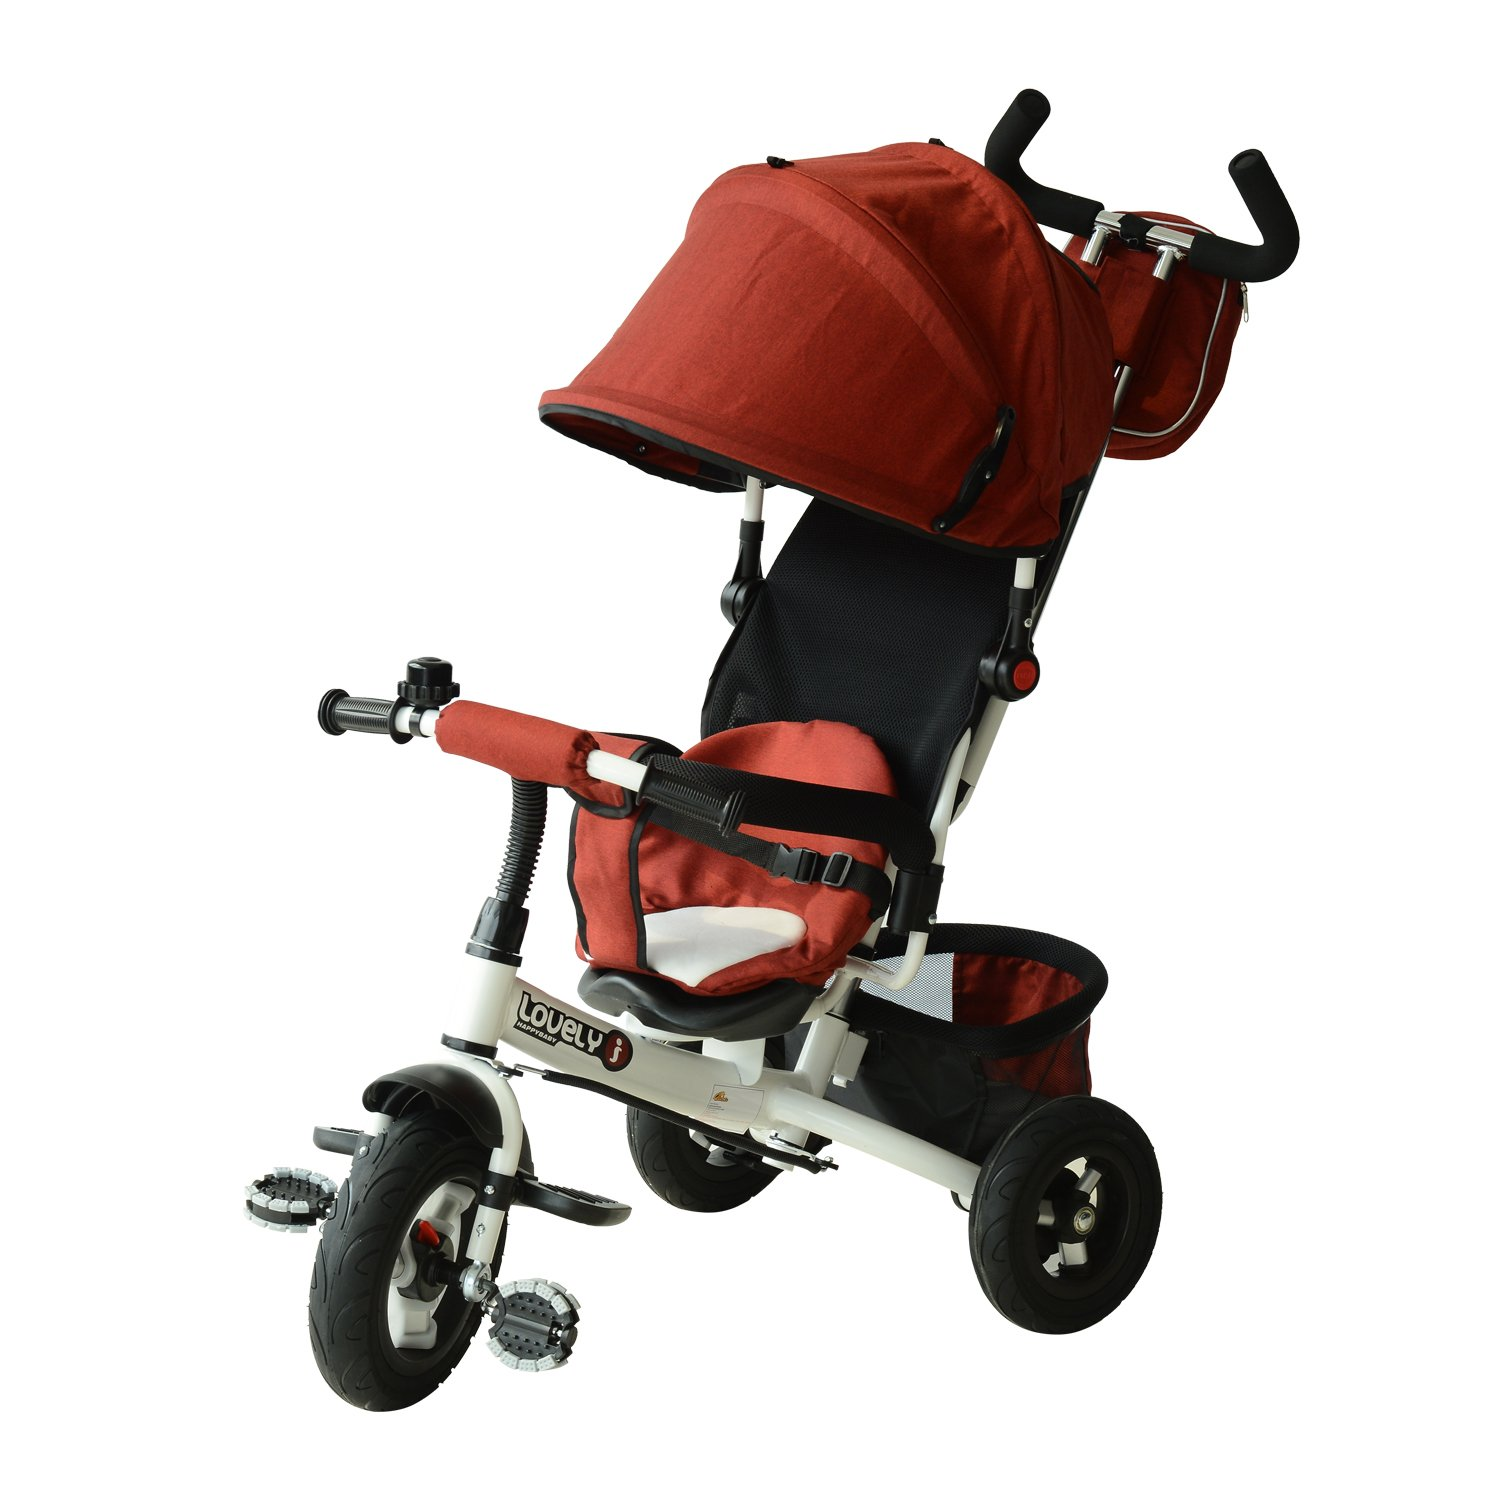 Qaba 2-in-1 Lightweight Steel Adjustable Convertible Tricycle Stroller - Red